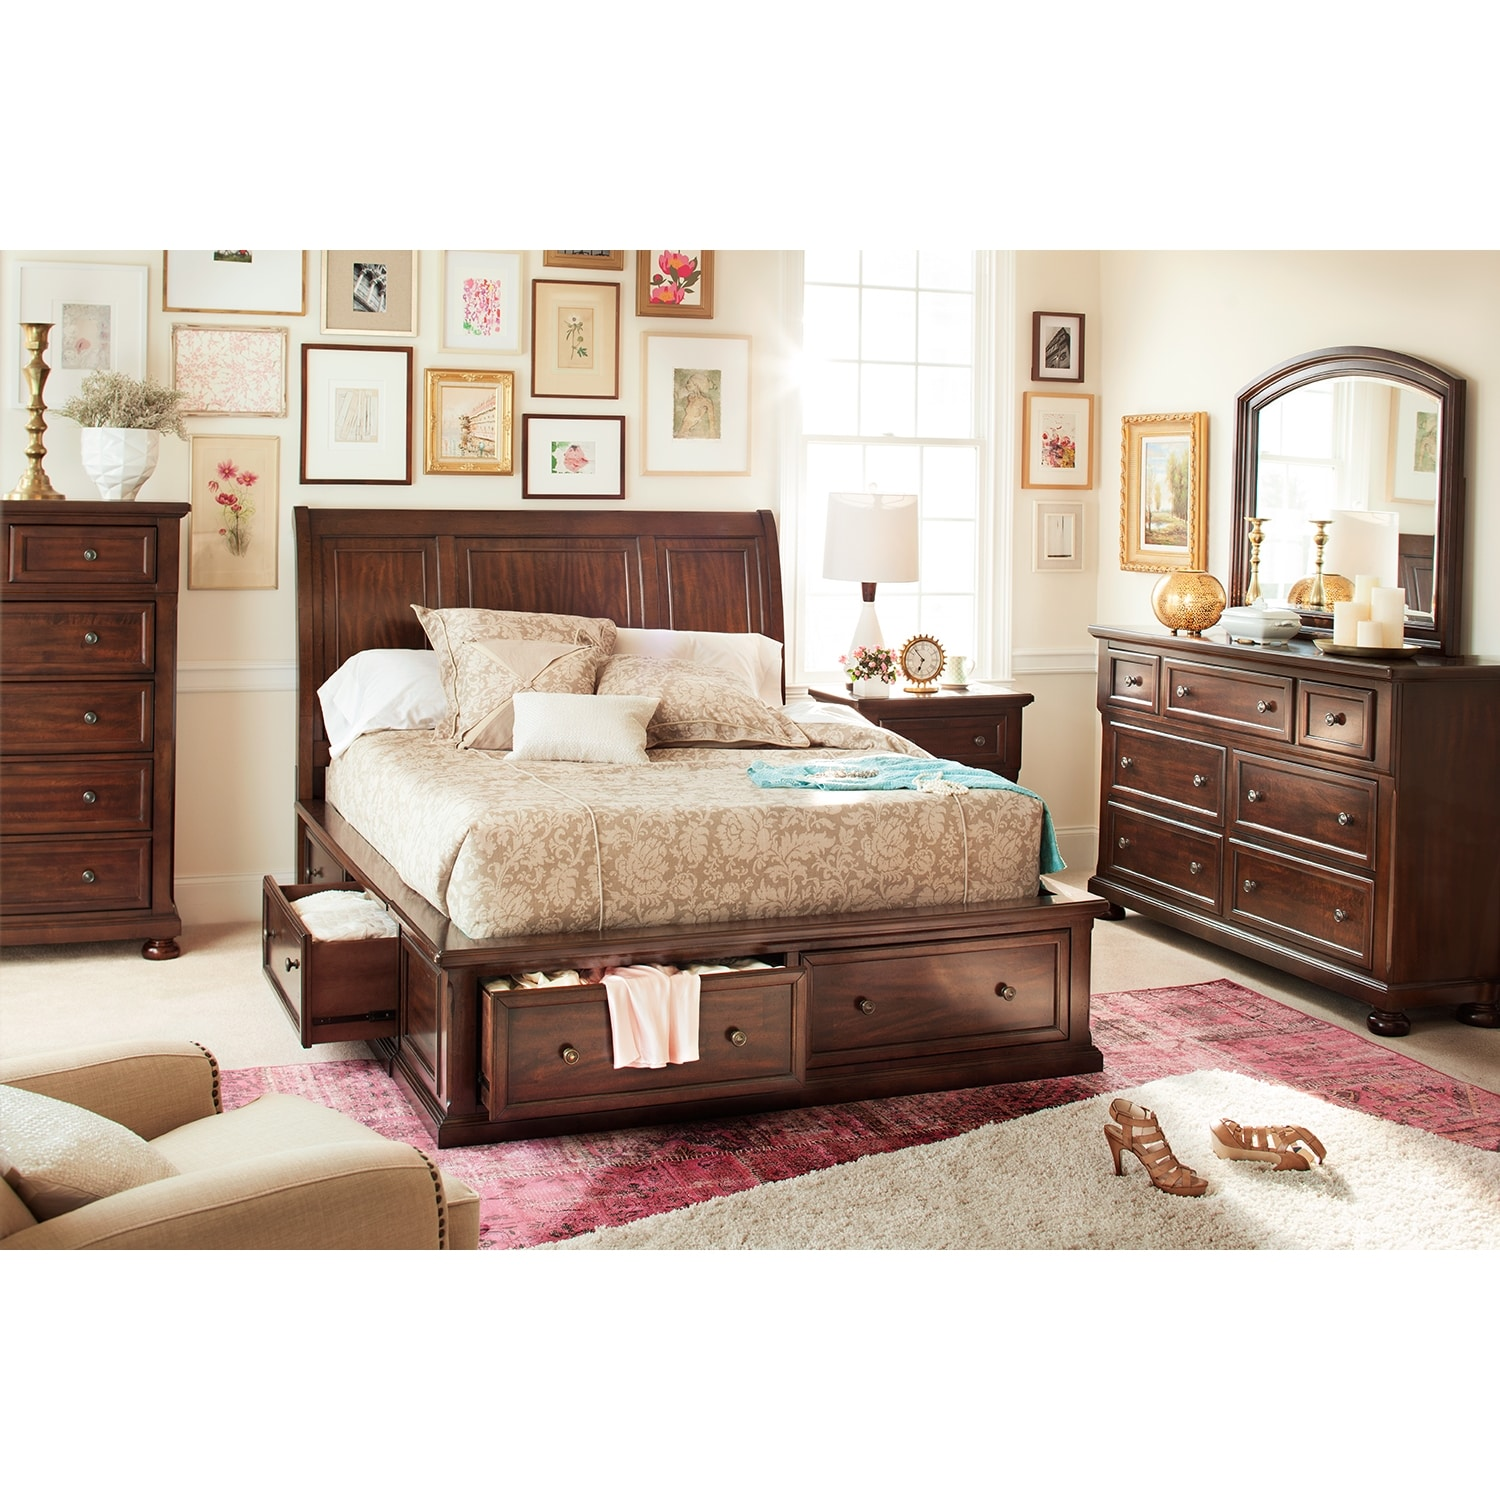 Hanover 7 piece king storage bedroom set cherry for Signature furniture